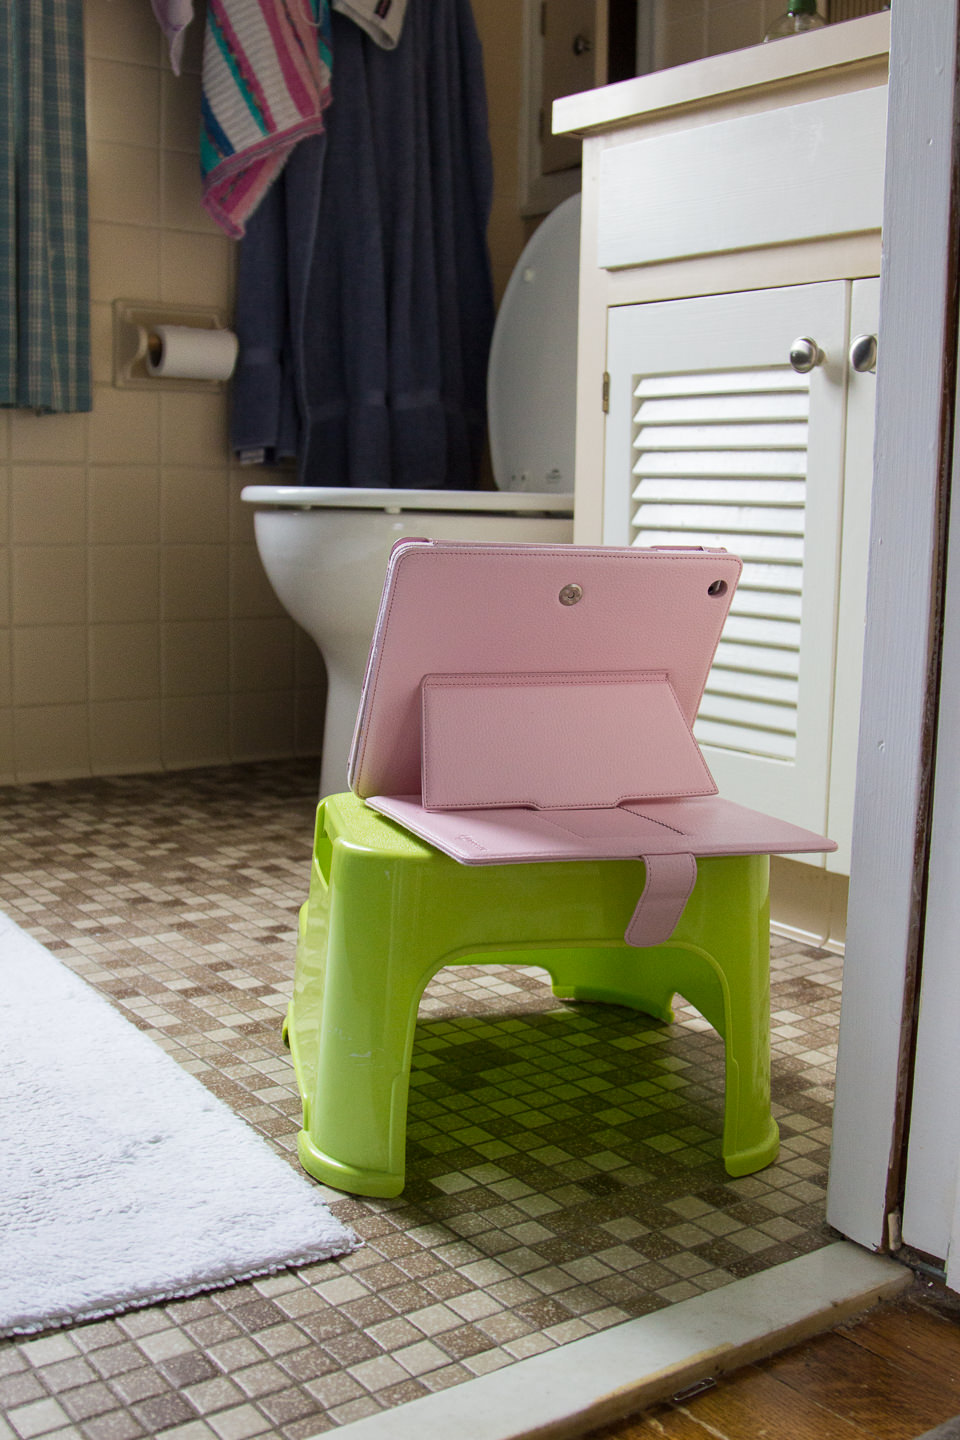 Yes, that's an iPad in a pink case on a step stool facing the toilet. #toilettraining